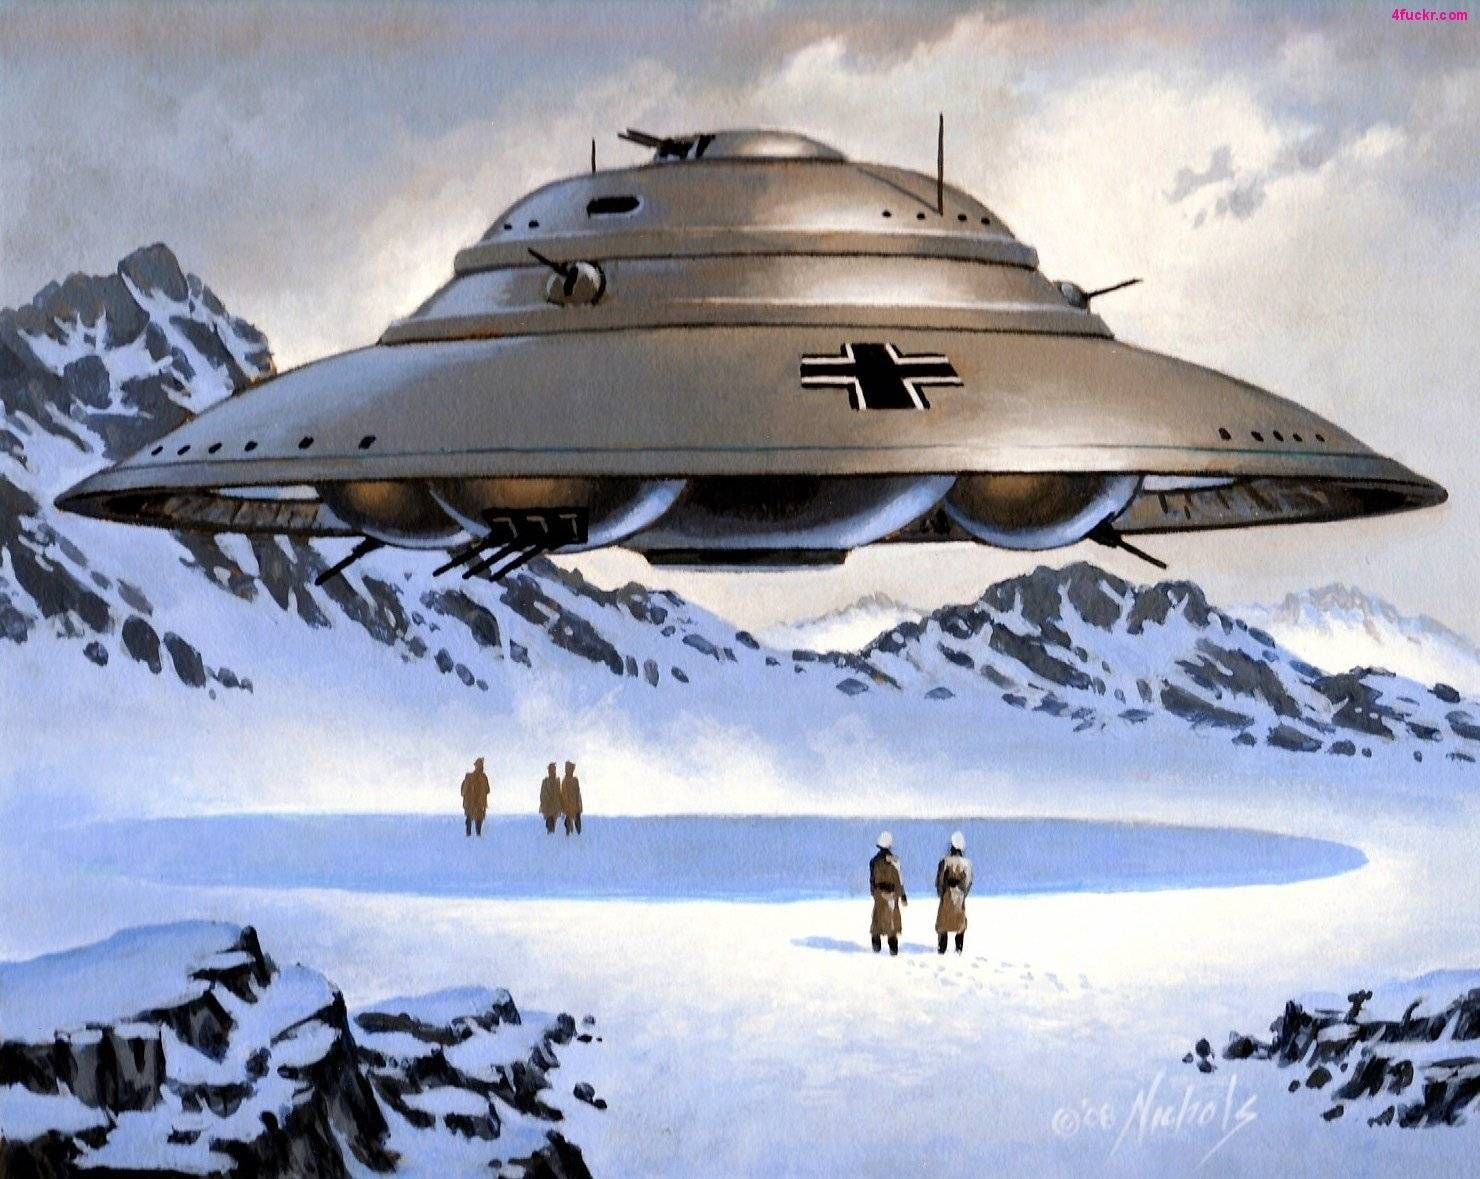 Ufo Abduction Wallpaper | Wallpapers 4k | Pinterest | UFO and ...